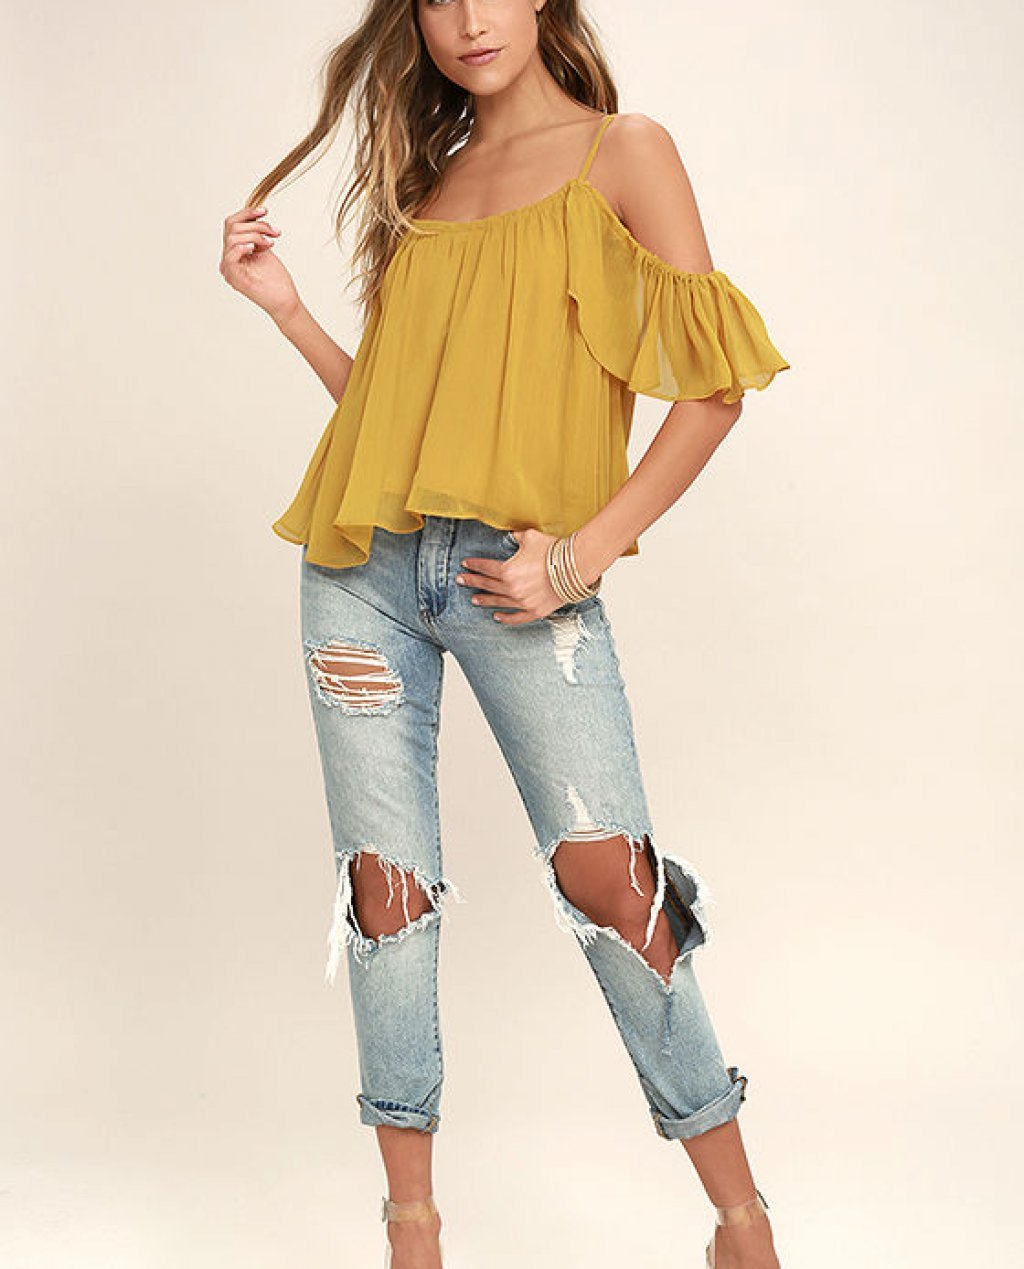 Got Me Moving Golden Yellow Off-the-Shoulder Top